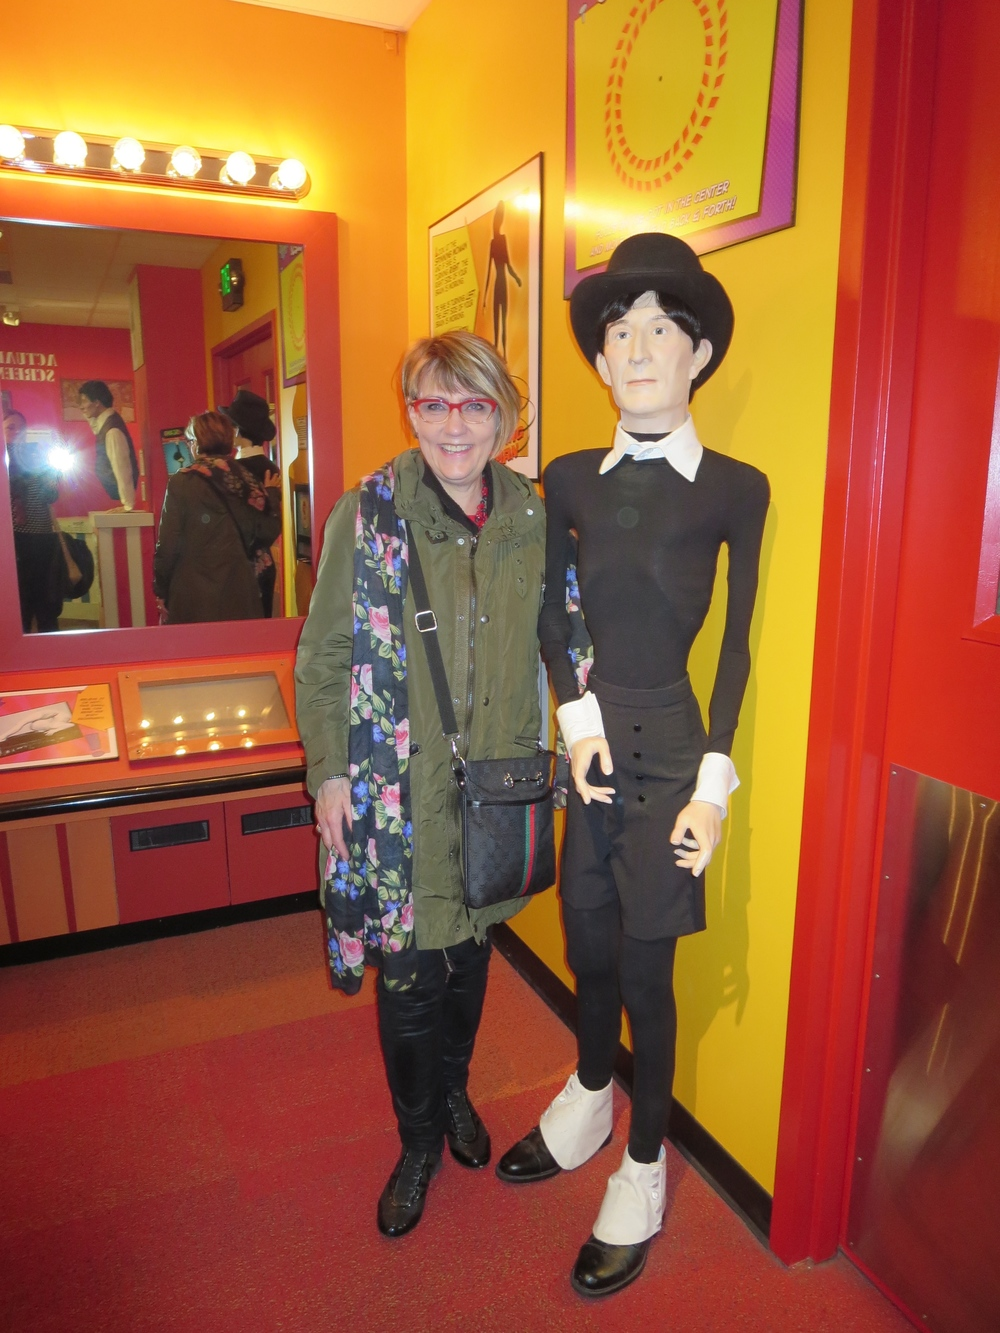 Ditta found the thinnest man - not wanting to imitate that